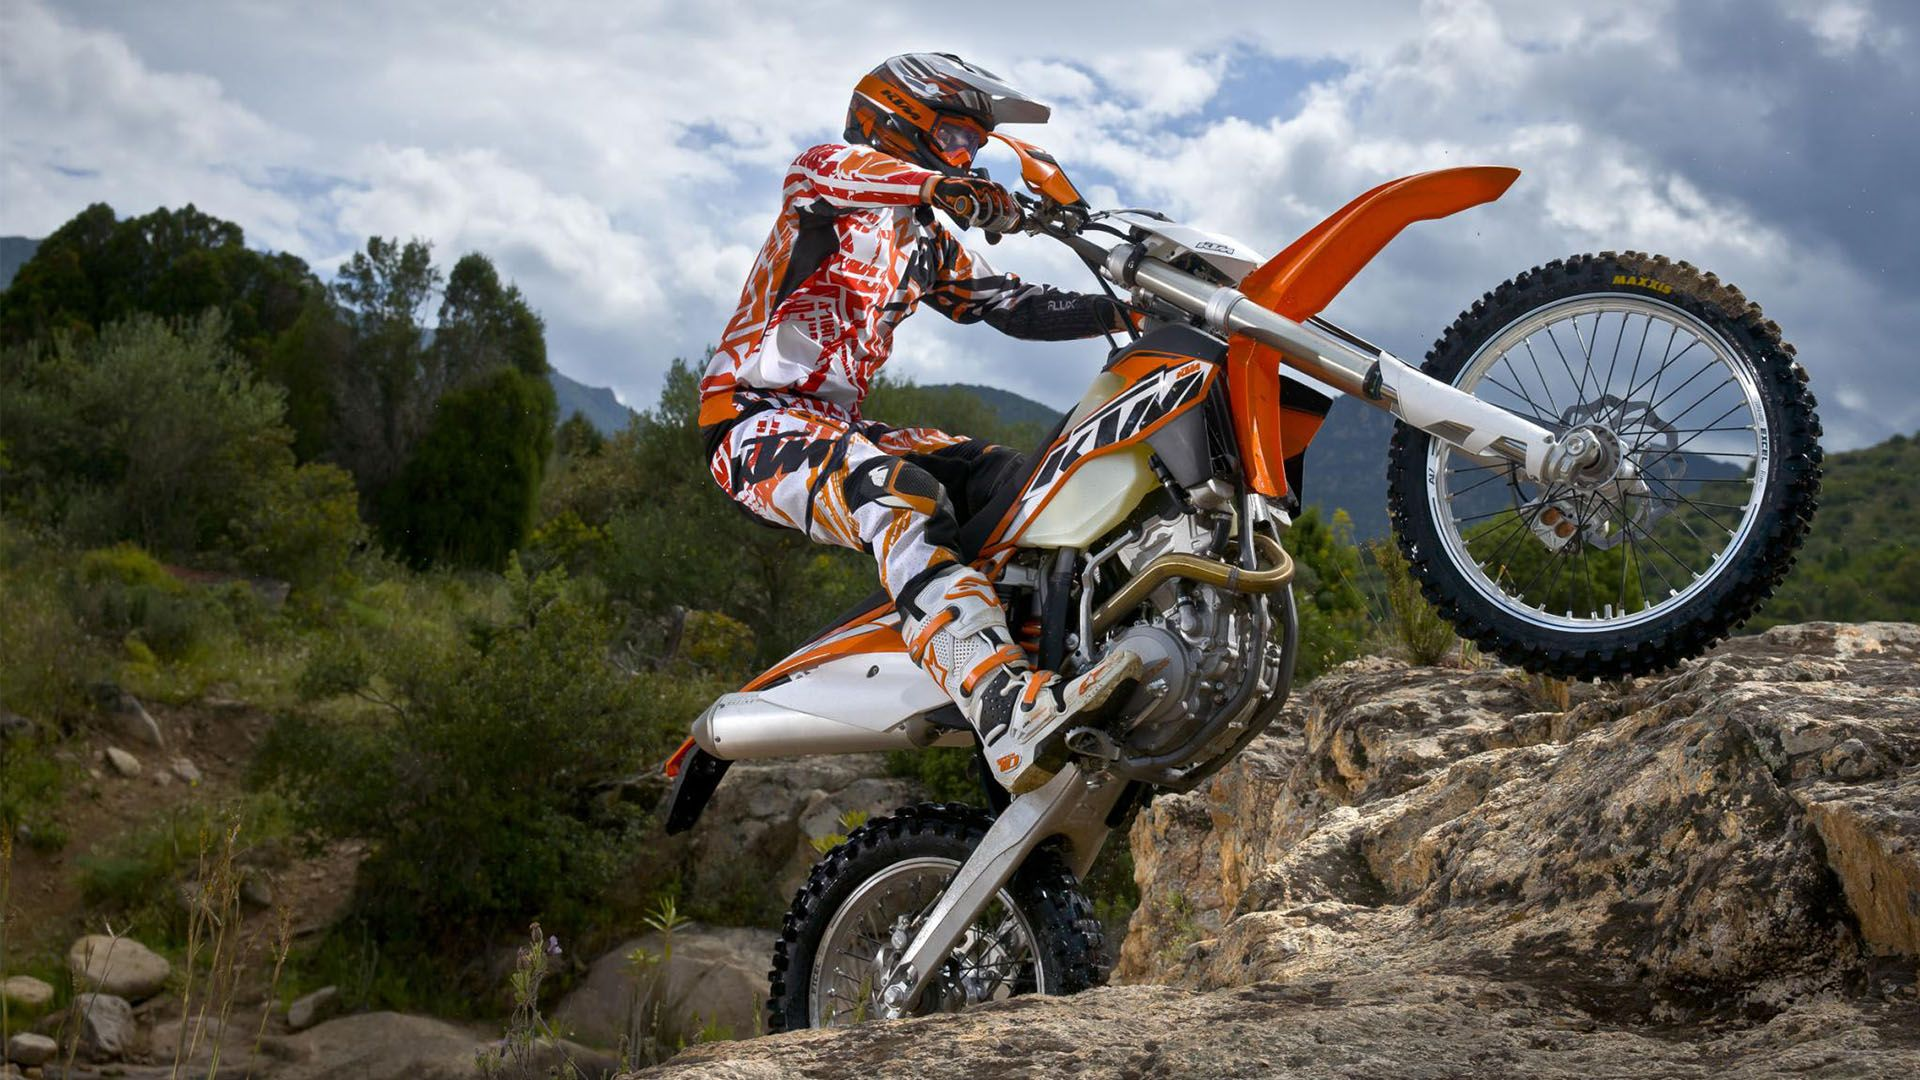 Ktm 500 Exc Freestyle Hd Wallpaper Download Wallpaper From Wallpapershade Com Download ktm exc wallpapers images